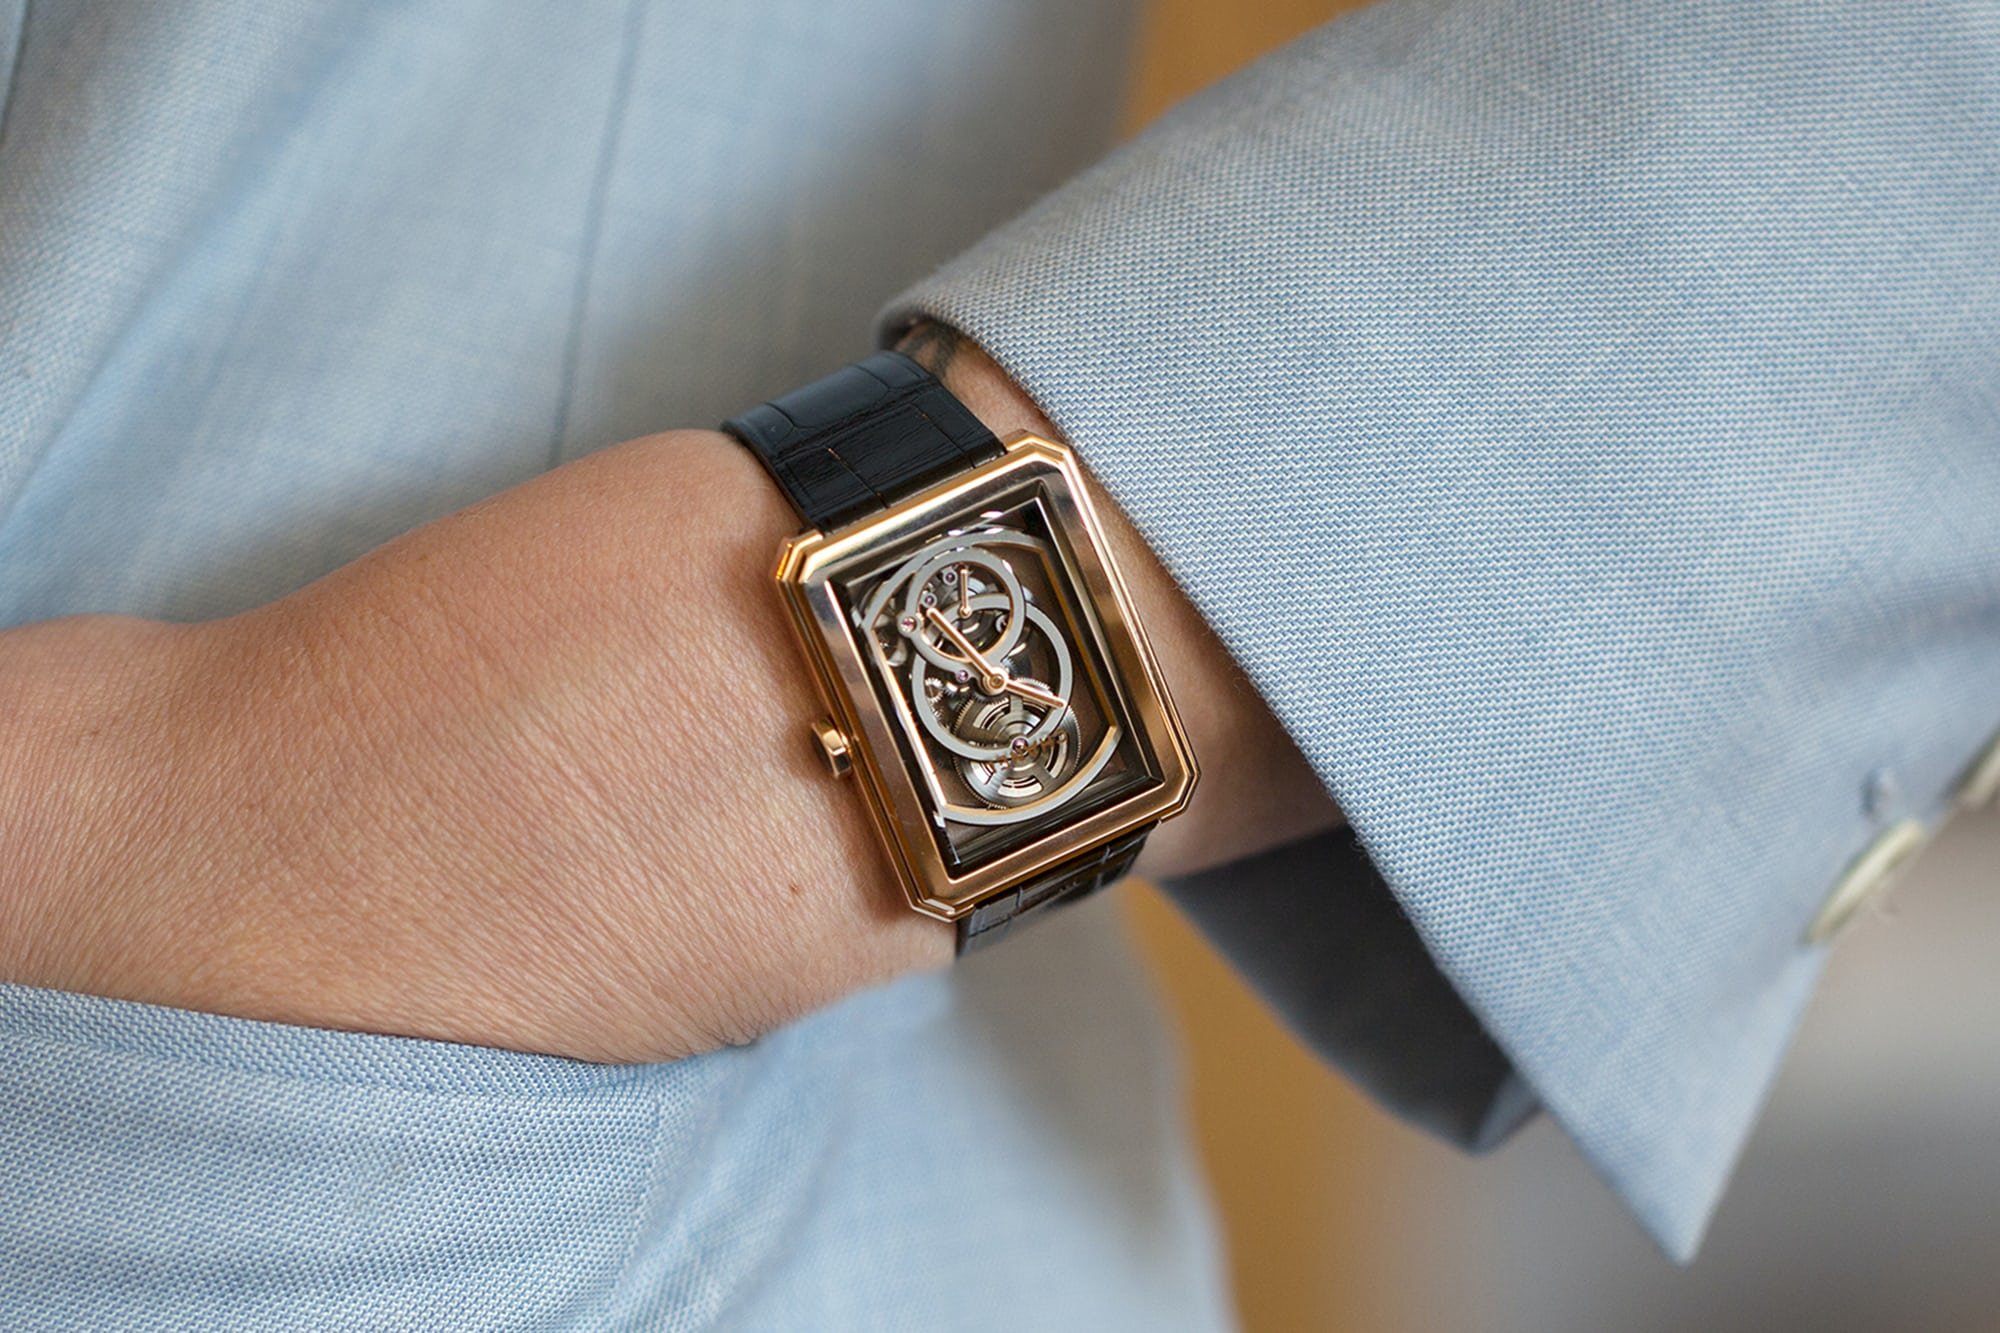 Hands-On: The Chanel Calibre 3 B89A6715 copy